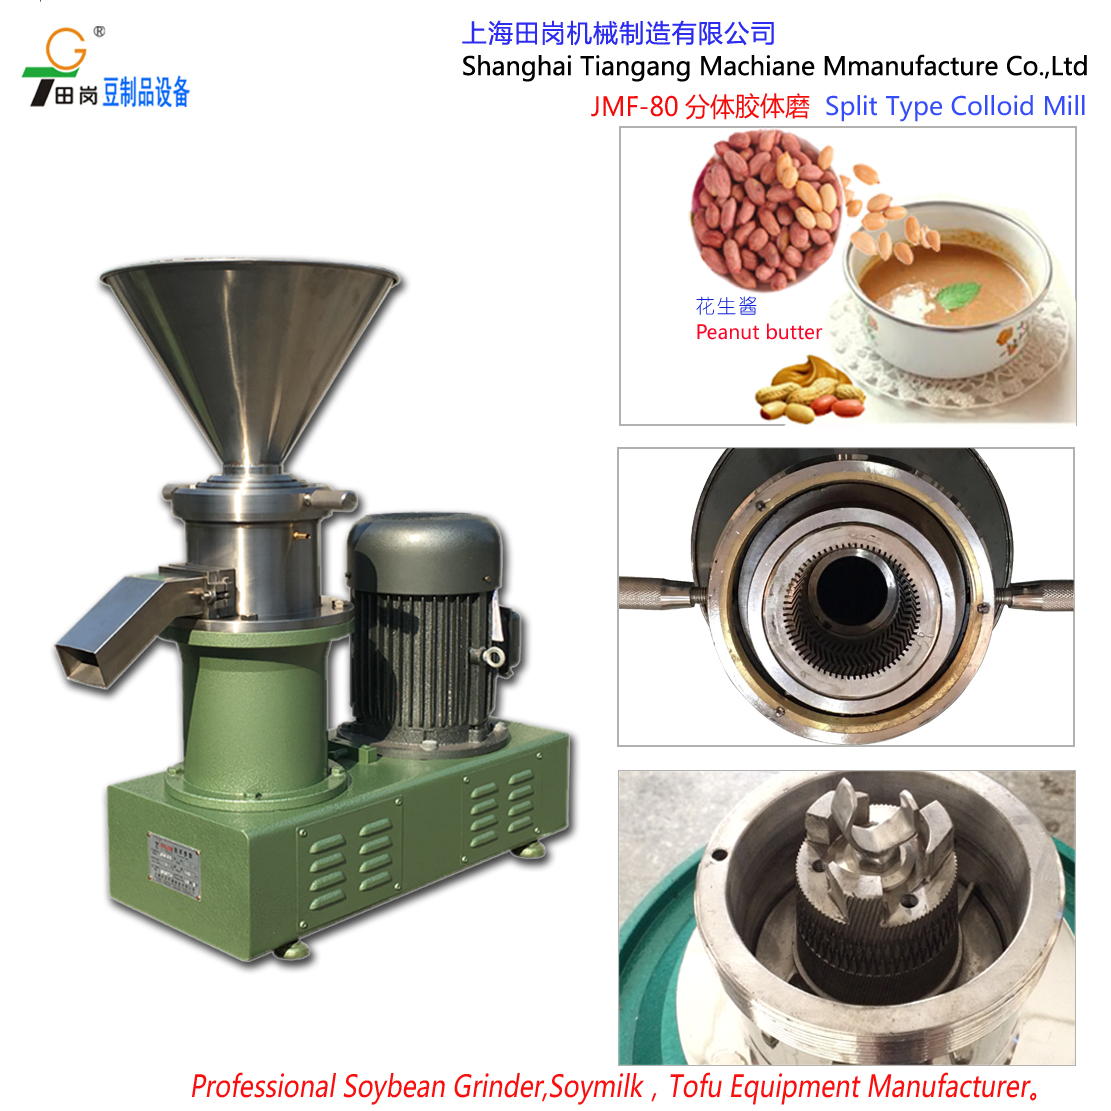 JMF-80 colloid mill peanut butter making machine